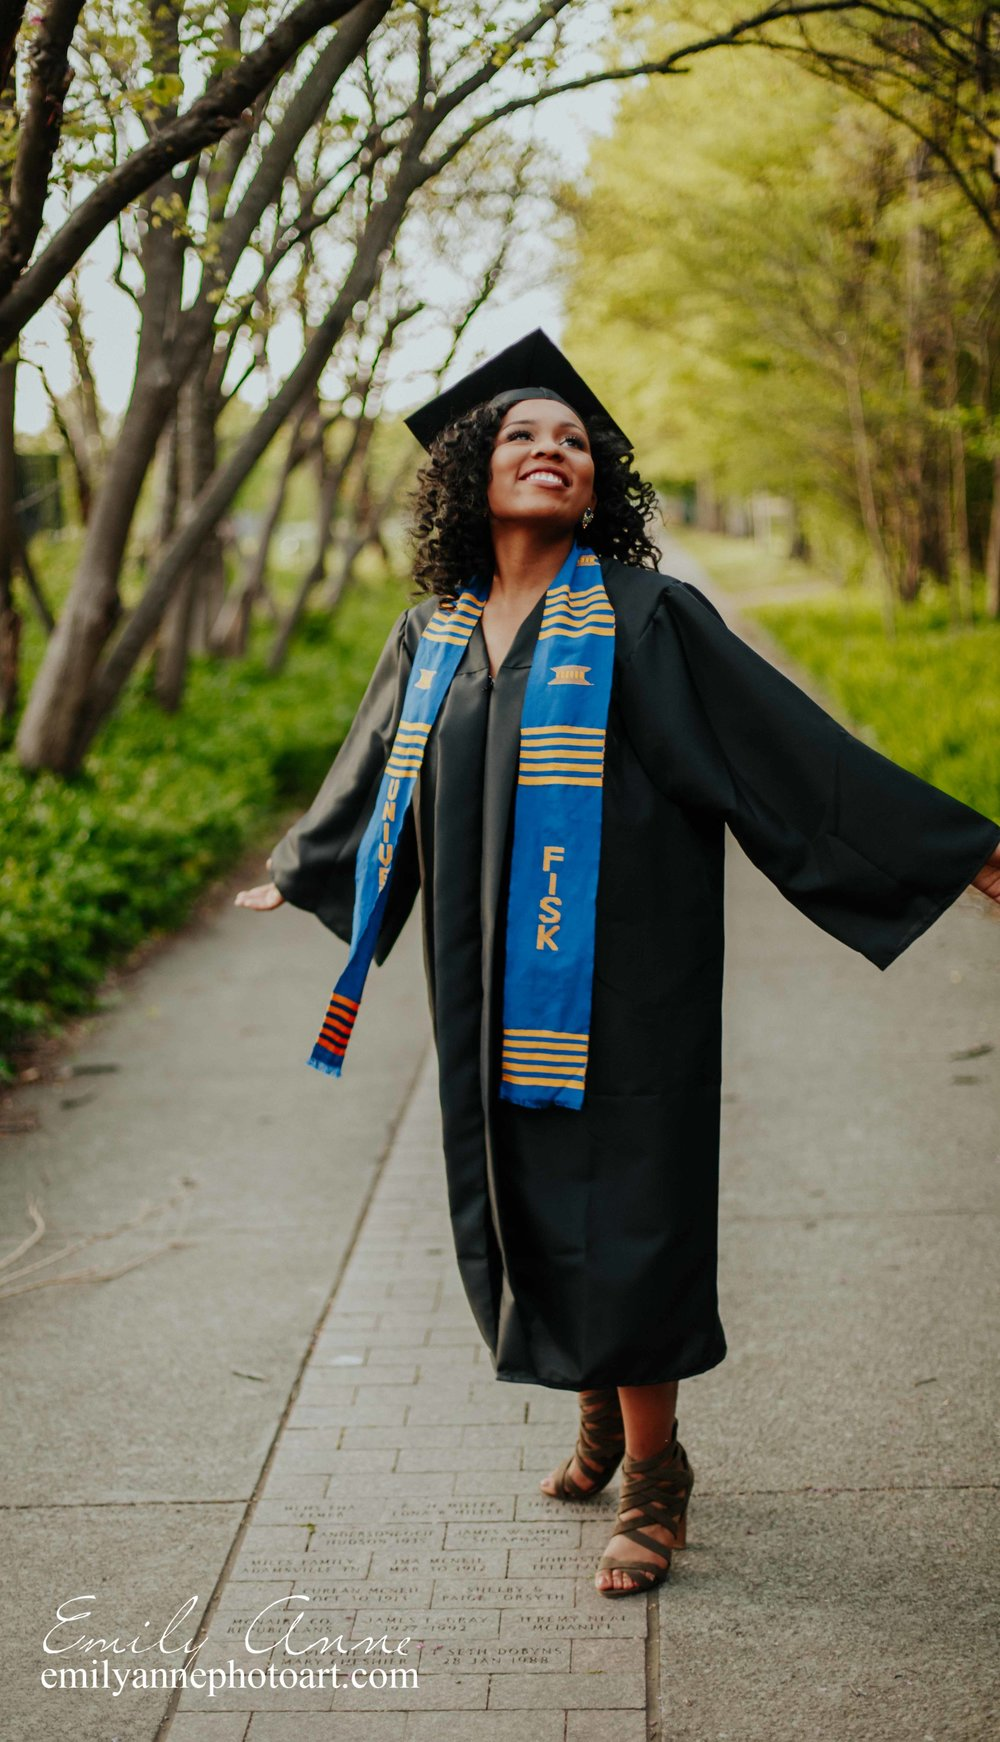 Top Schools in TN Fisk University Graduate Graduation Portraits Emily Anne Photography Nashville TN